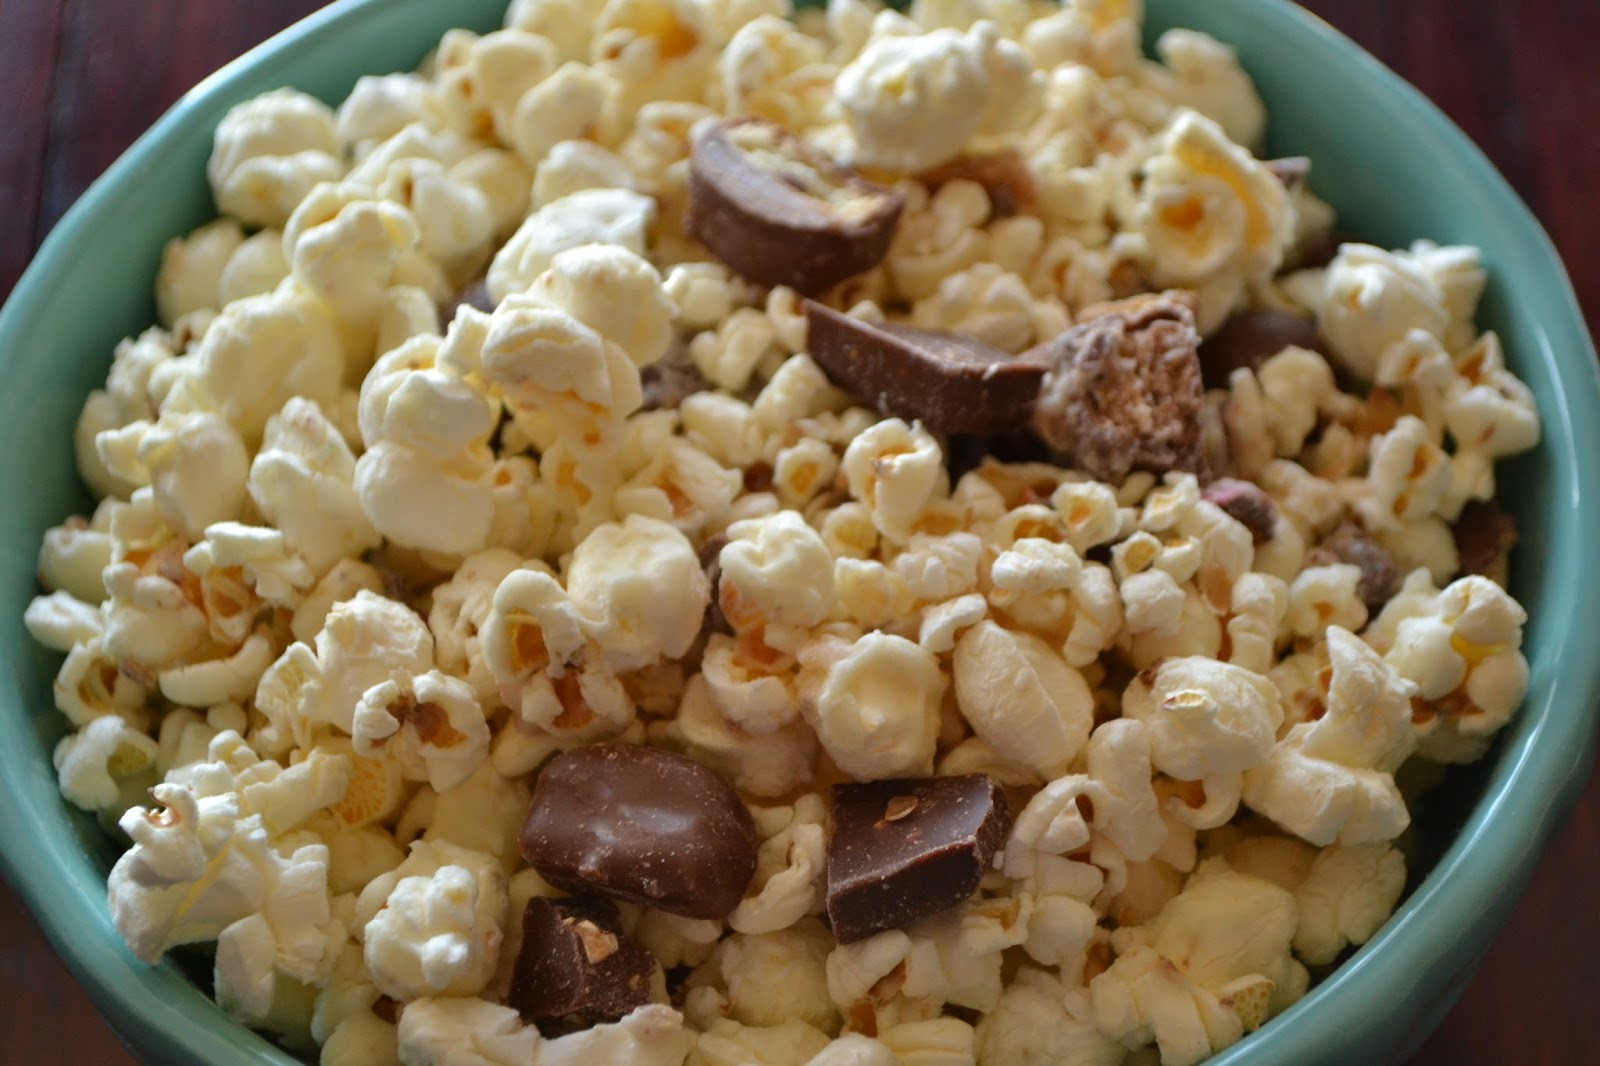 White chocolate popcorn with candy bars